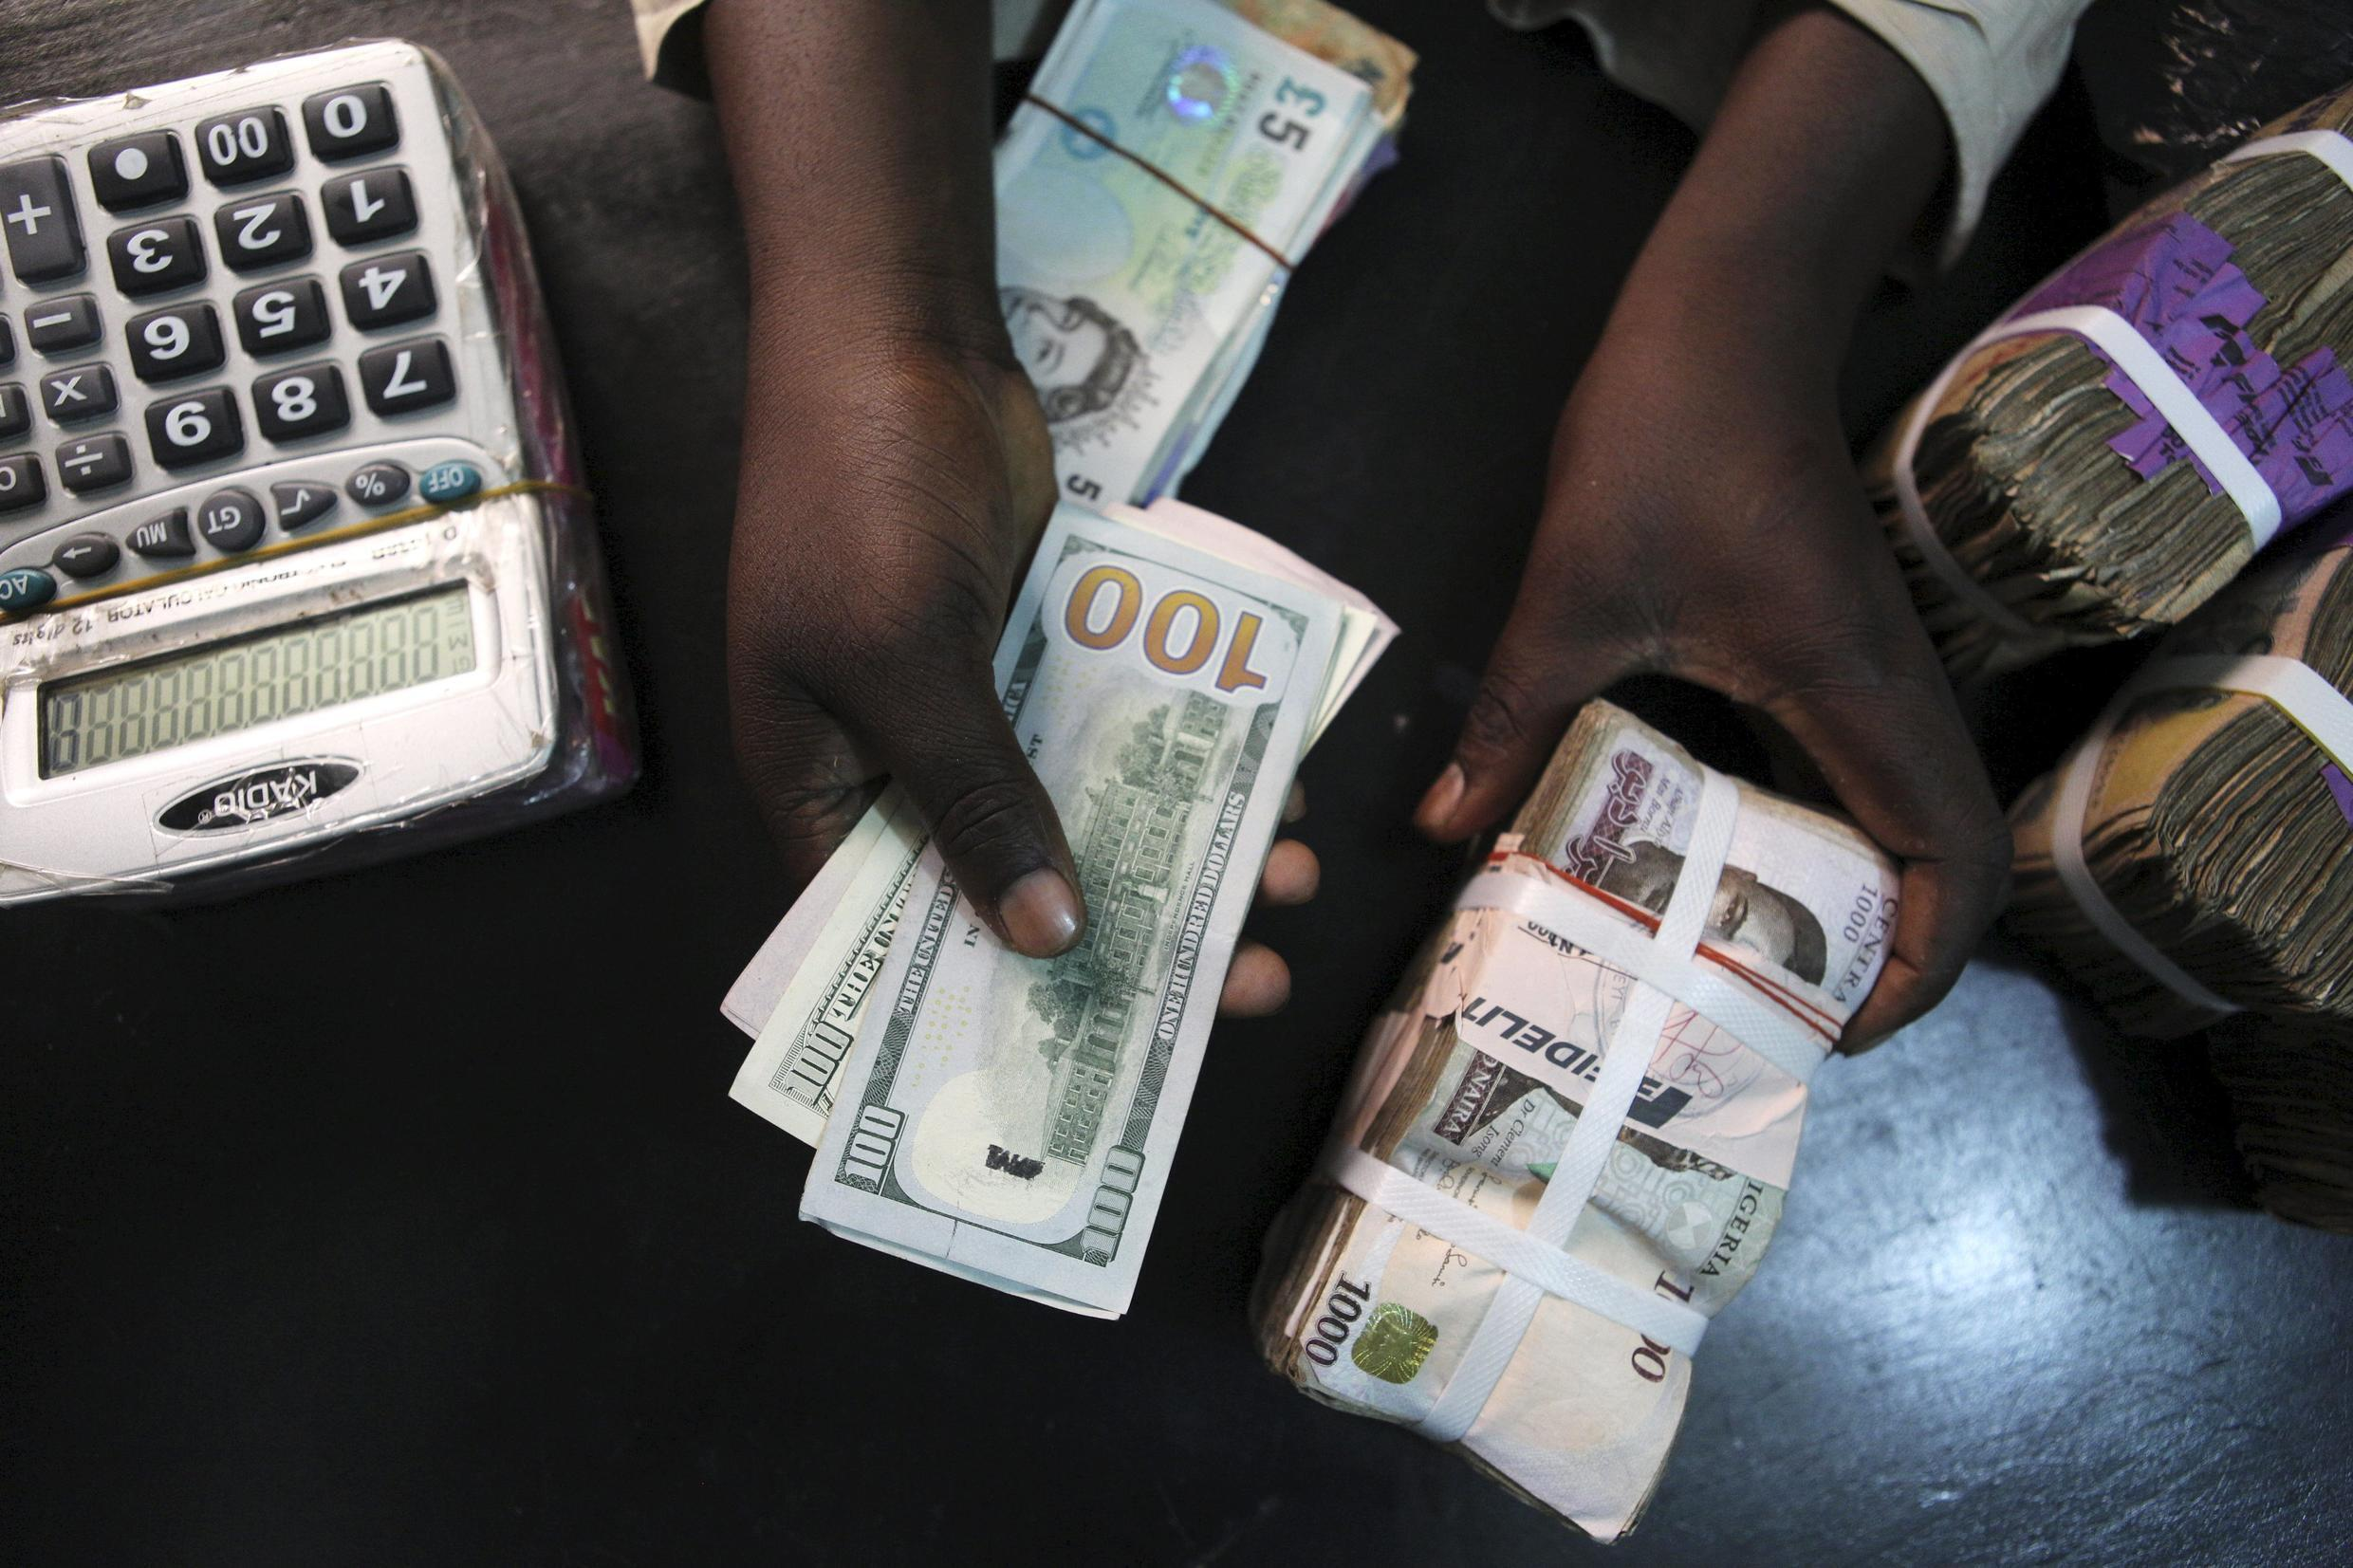 A trader changes dollars for Naira at a currency exchange store in Lagos, Nigeria in this February 12, 2015